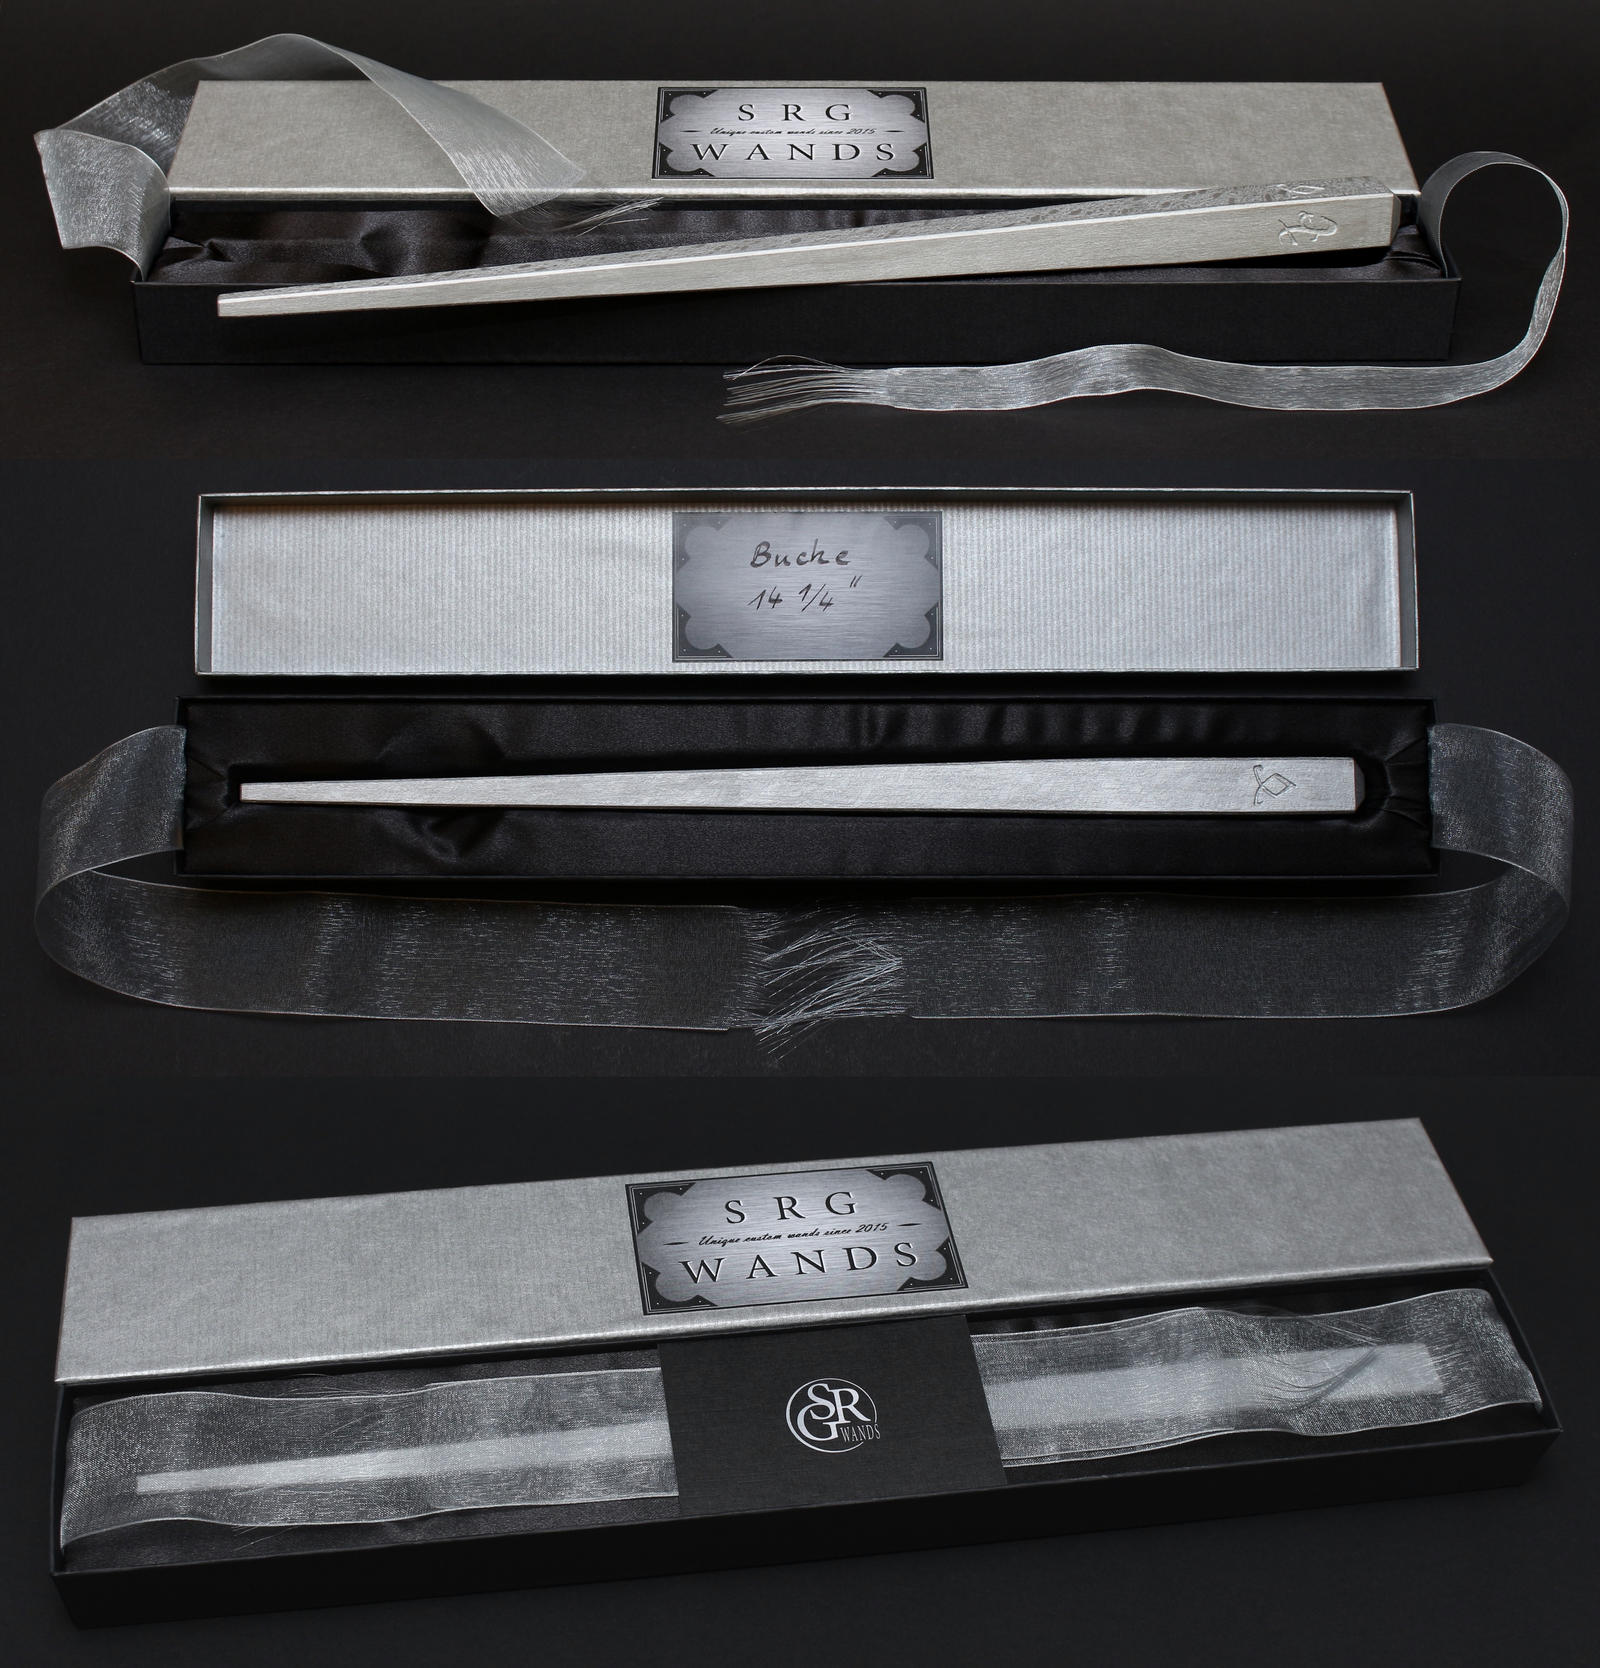 Shadowhunters stele box by srg wands on deviantart for Farben wand wirkung